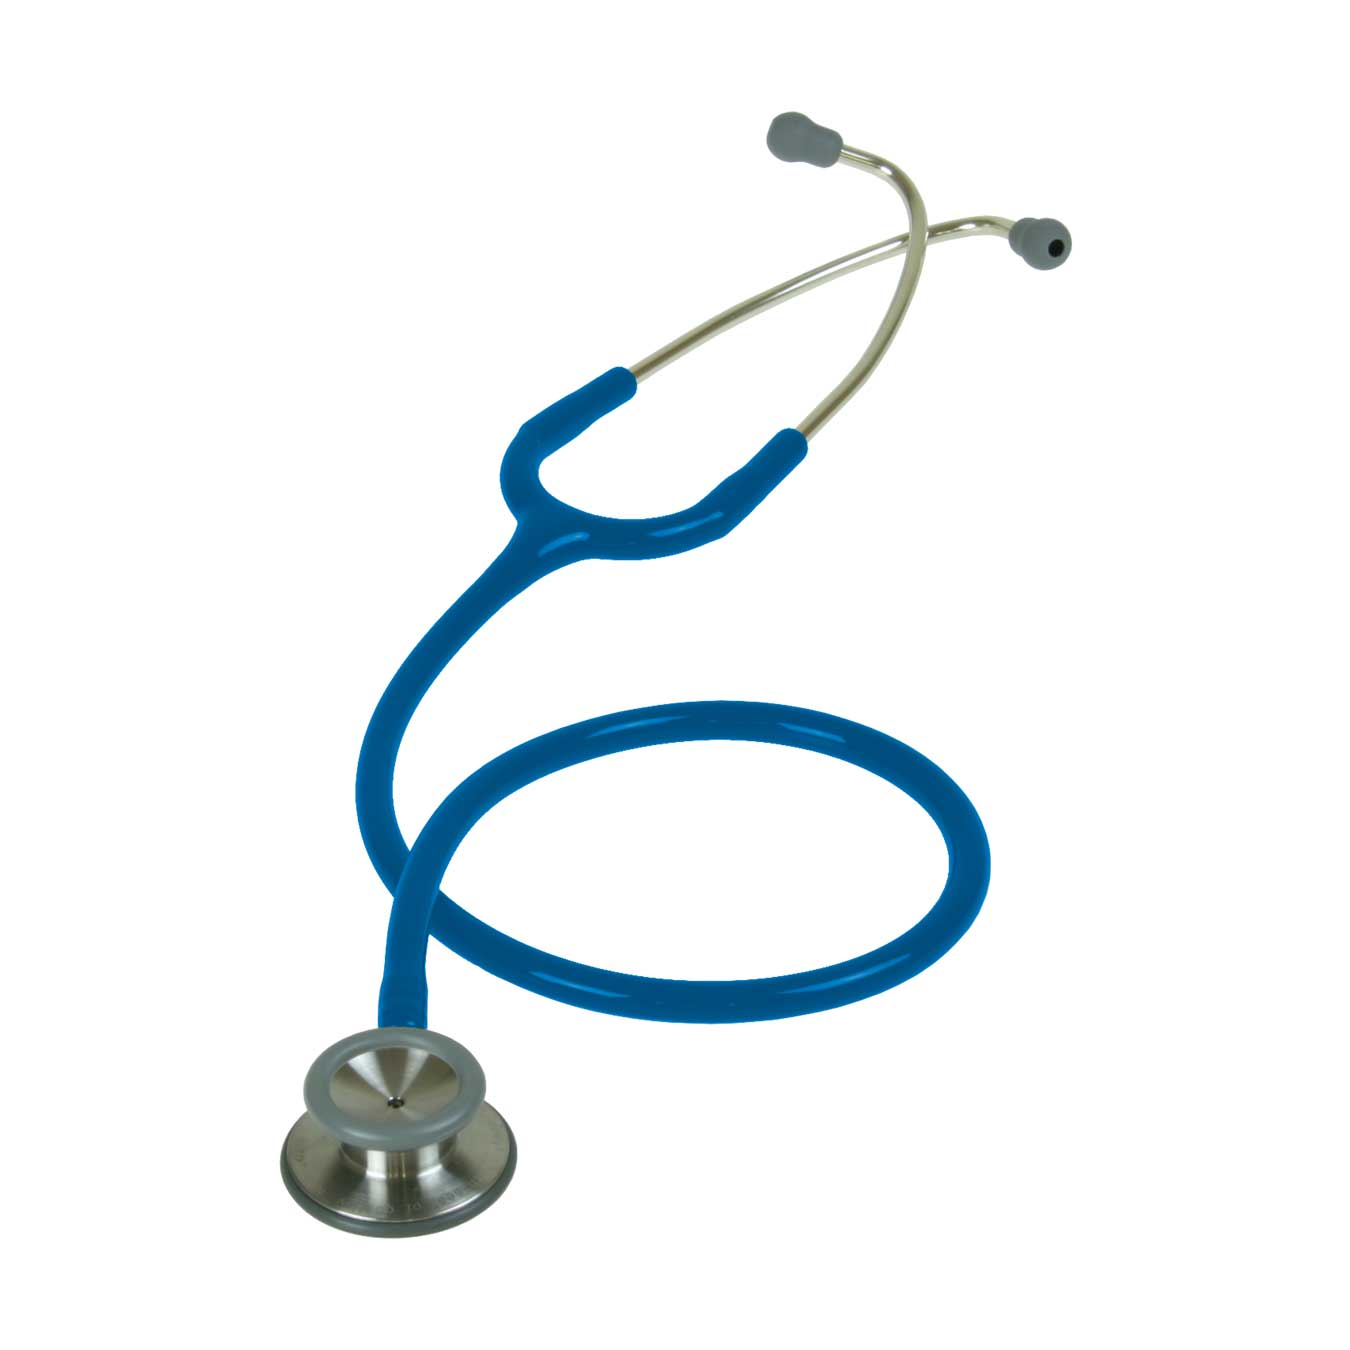 LSCLTRB_1_Liberty-Classic-Tunable-Stethoscope-Royal-Blue